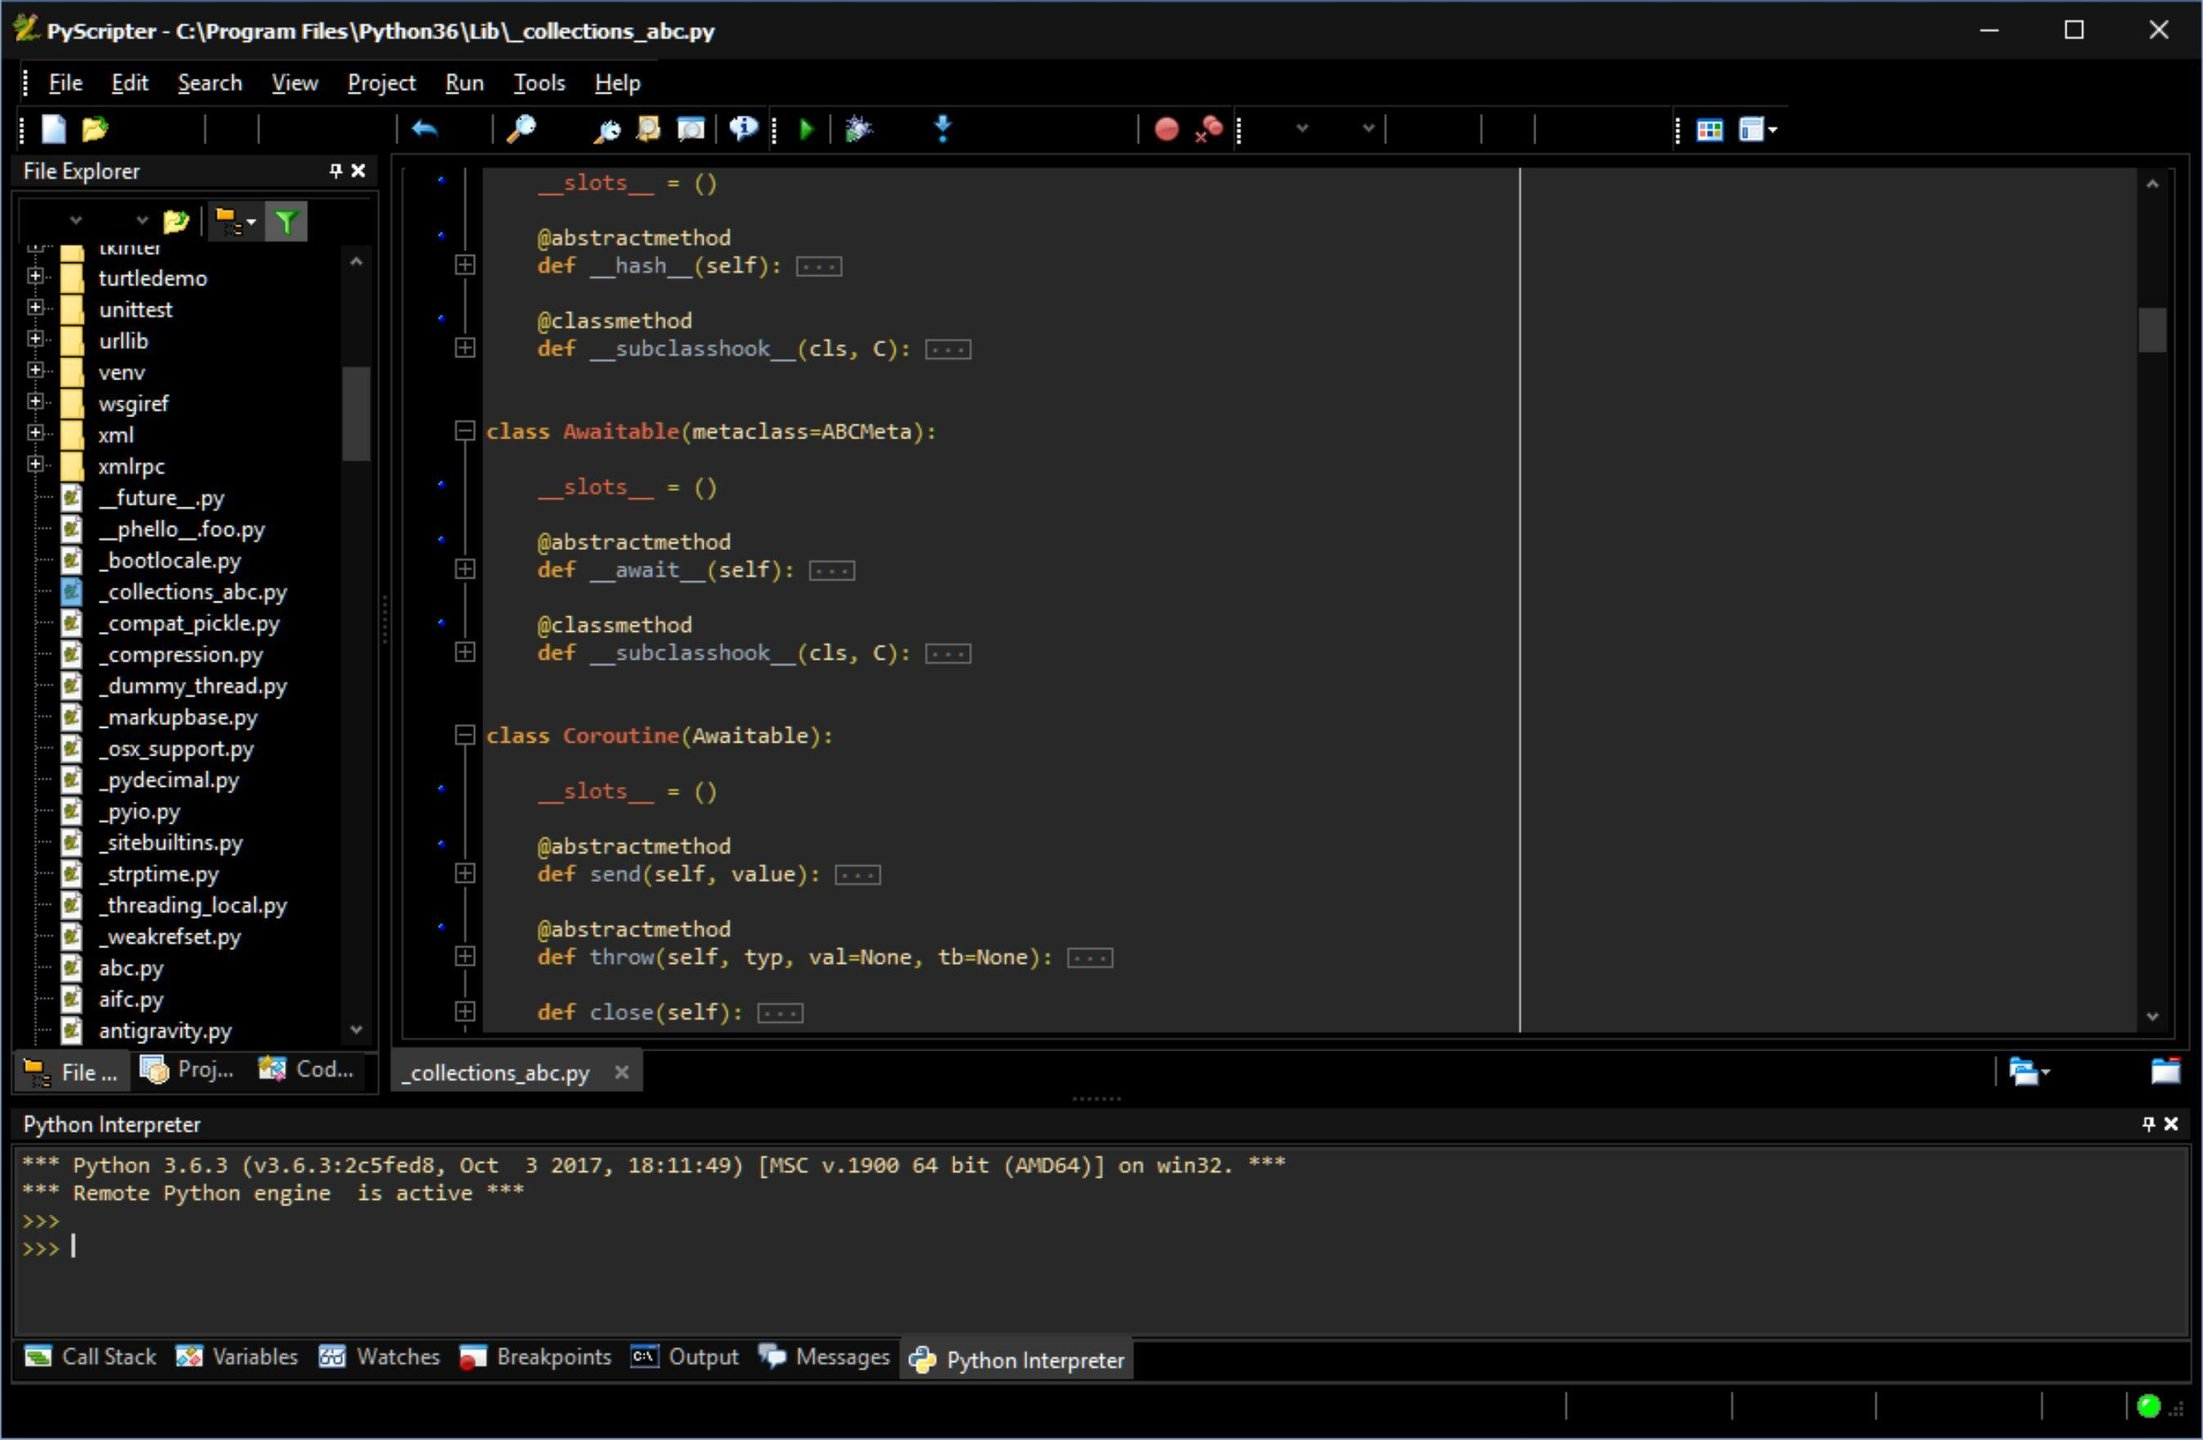 PyScripter x64 screenshot